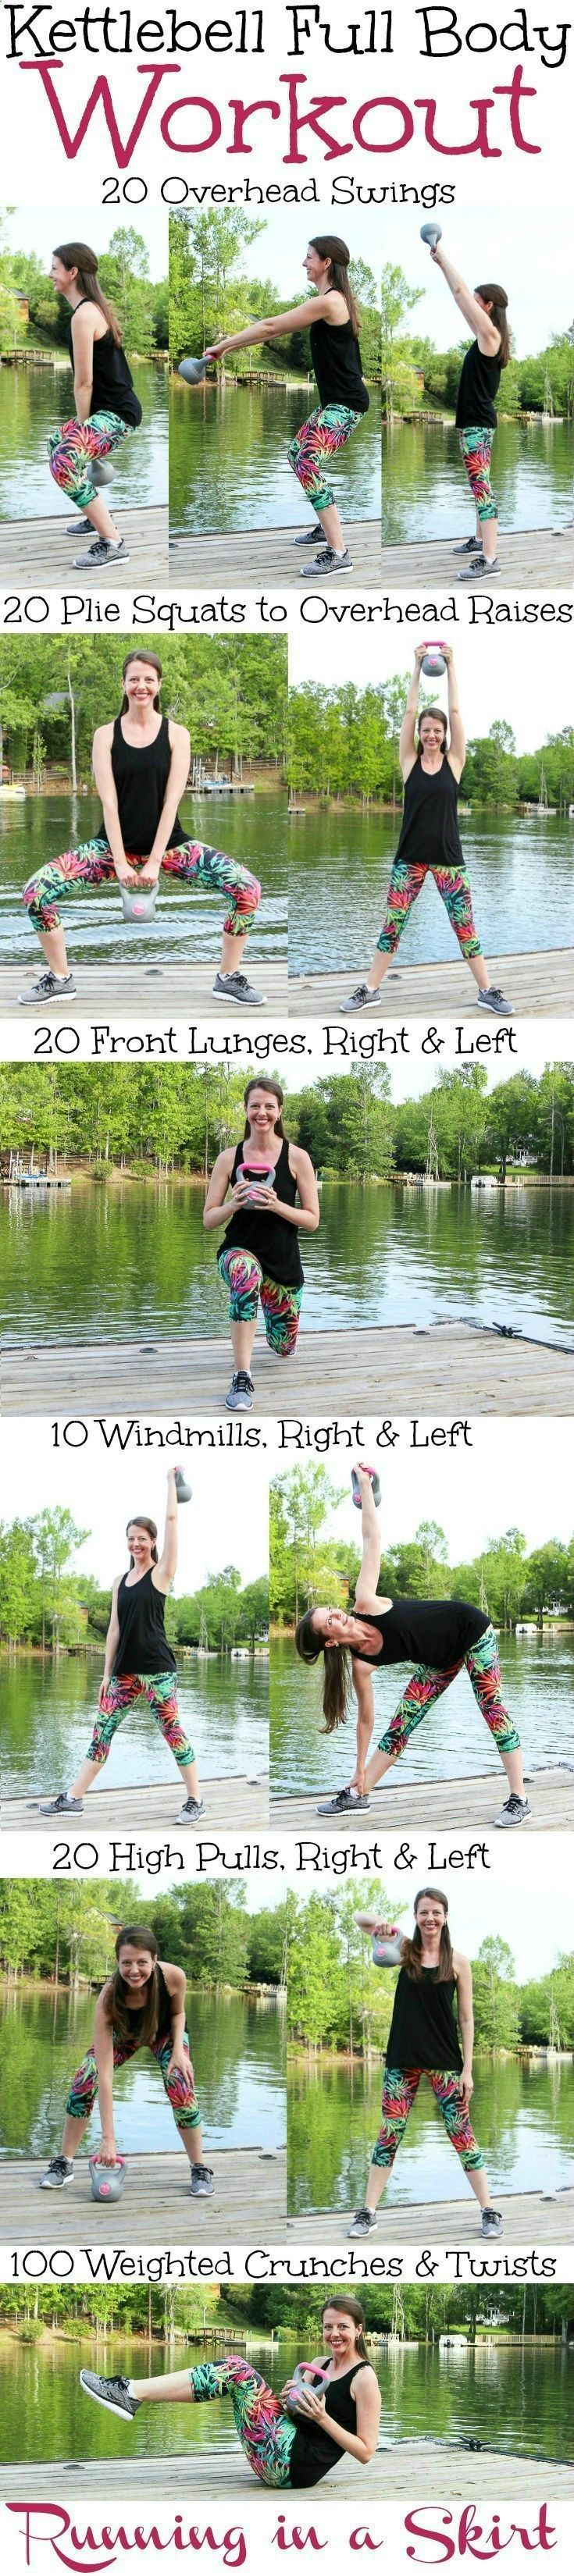 Kettlebell Full Body Workout! A fat burning, at home routine for arms, upper body, abs, glutes and legs that gets results! Also gets the heart rate up with cardio. Great to tone it up with simple moves even a beginner can do. Add more reps for advance